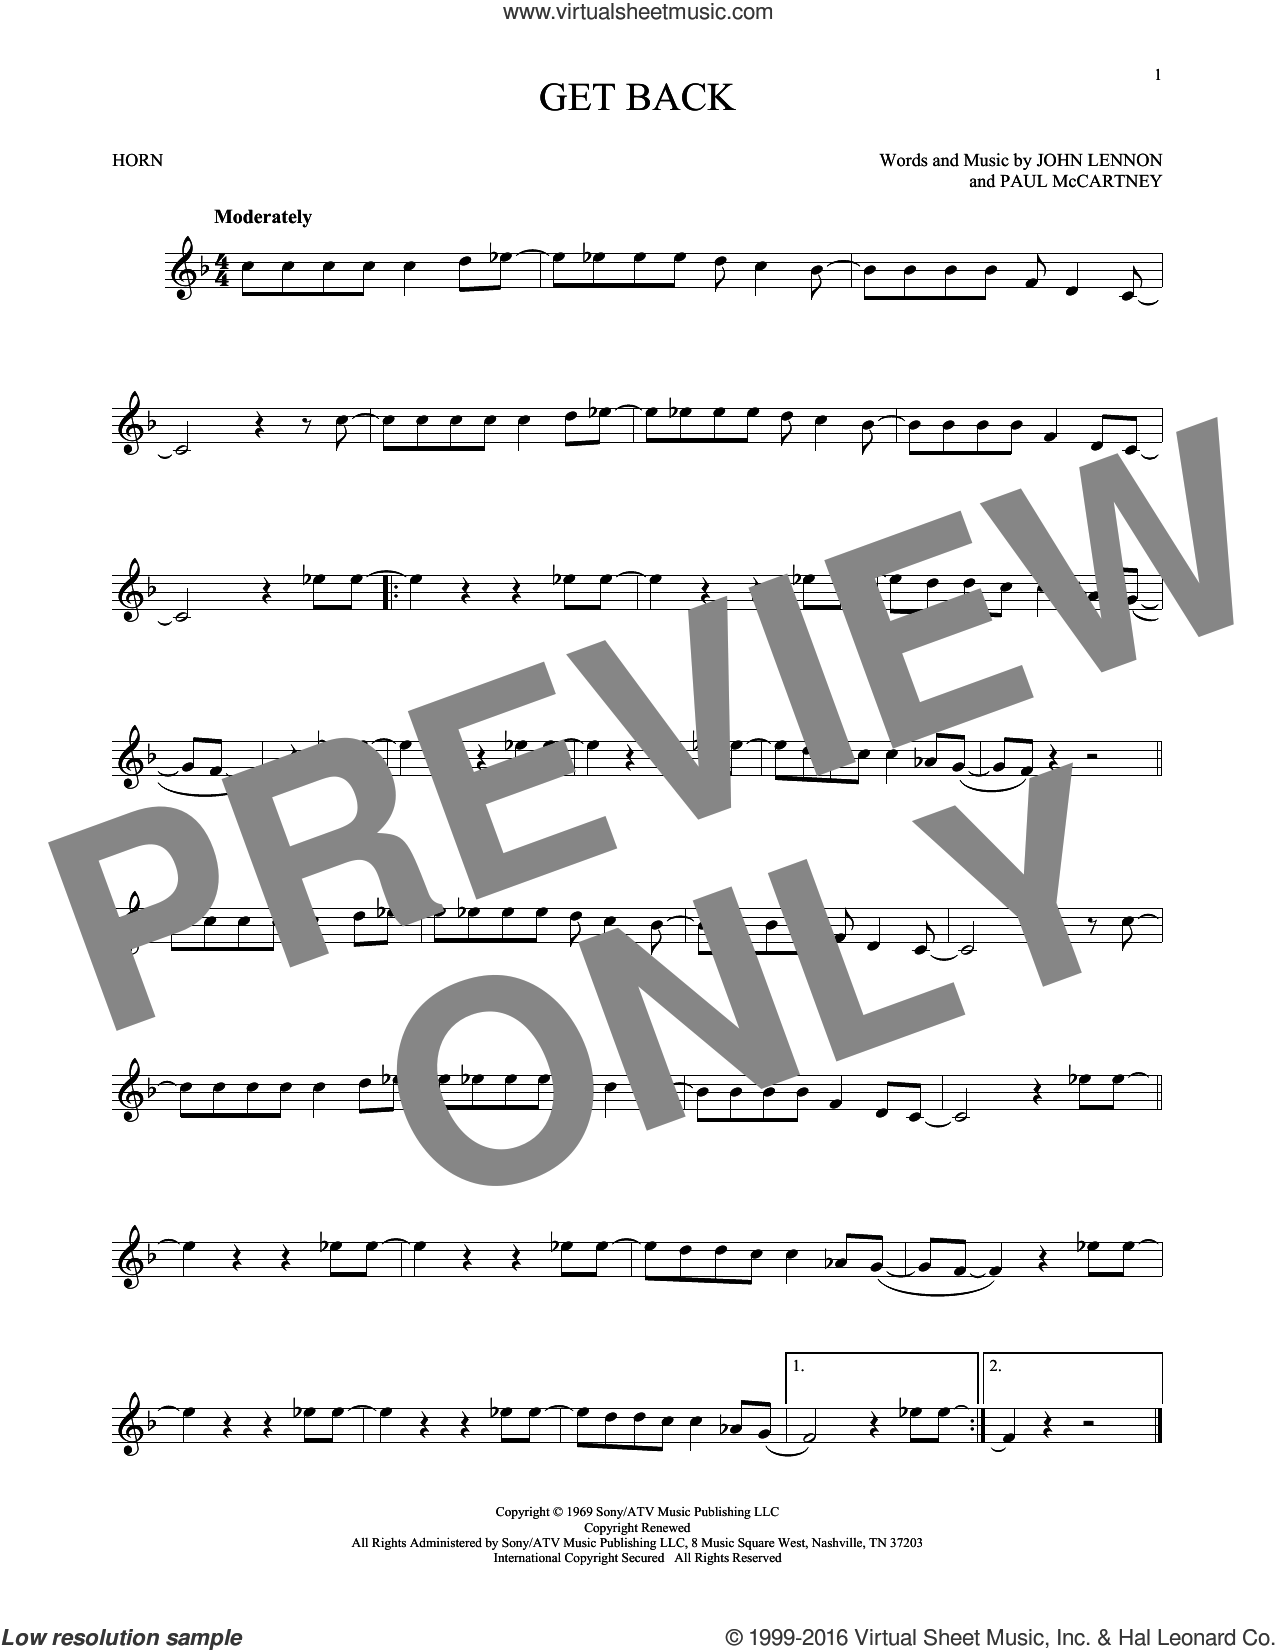 Get Back sheet music for horn solo by Paul McCartney, The Beatles and John Lennon. Score Image Preview.